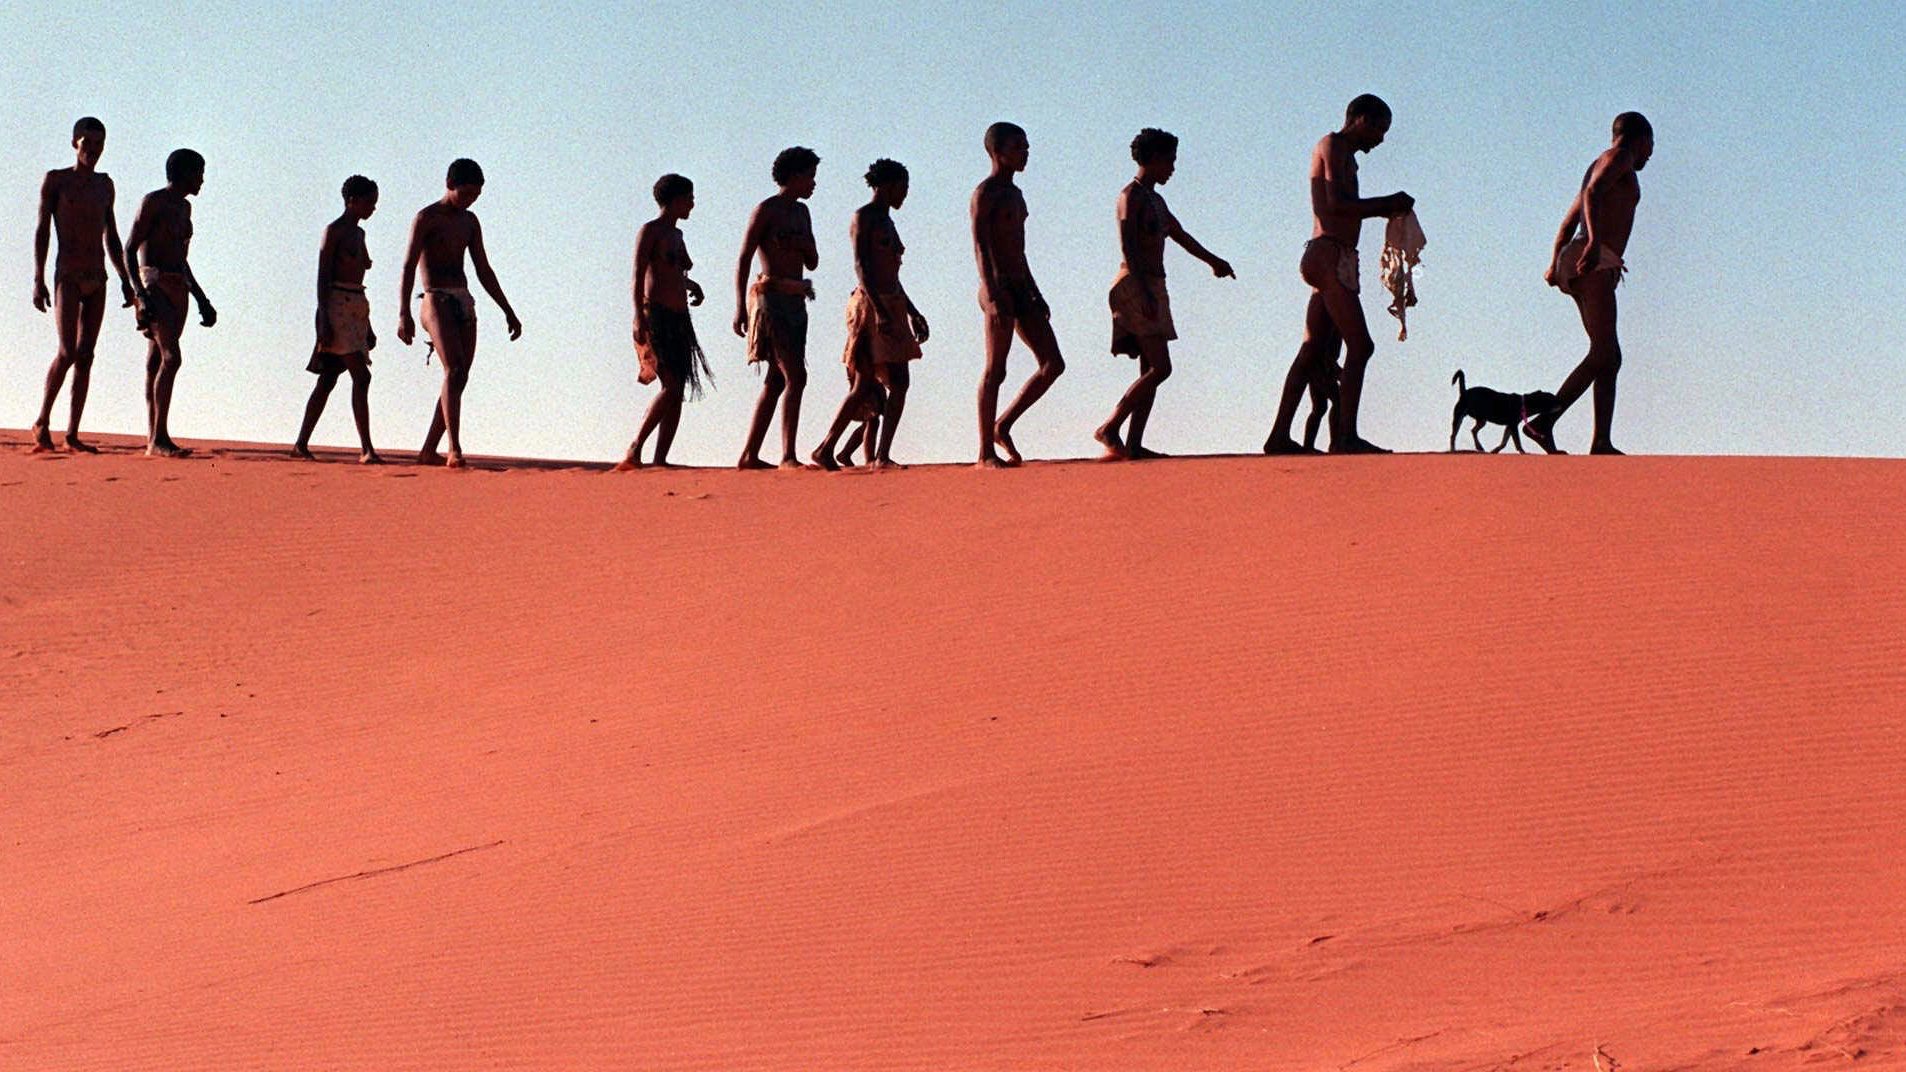 Bushmen walk on the dunes in the Kalahari Gemsbok Park in South Africa, Jan. 23, 1999, to visit a ancestral burial site. Though much of the land redistribution process has been slow and dogged by legal fights, the Khomani claim for a huge piece of land which was taken from under them during colonialism and apartheid, is close to being settled. (AP Photo Obed Zilwa)